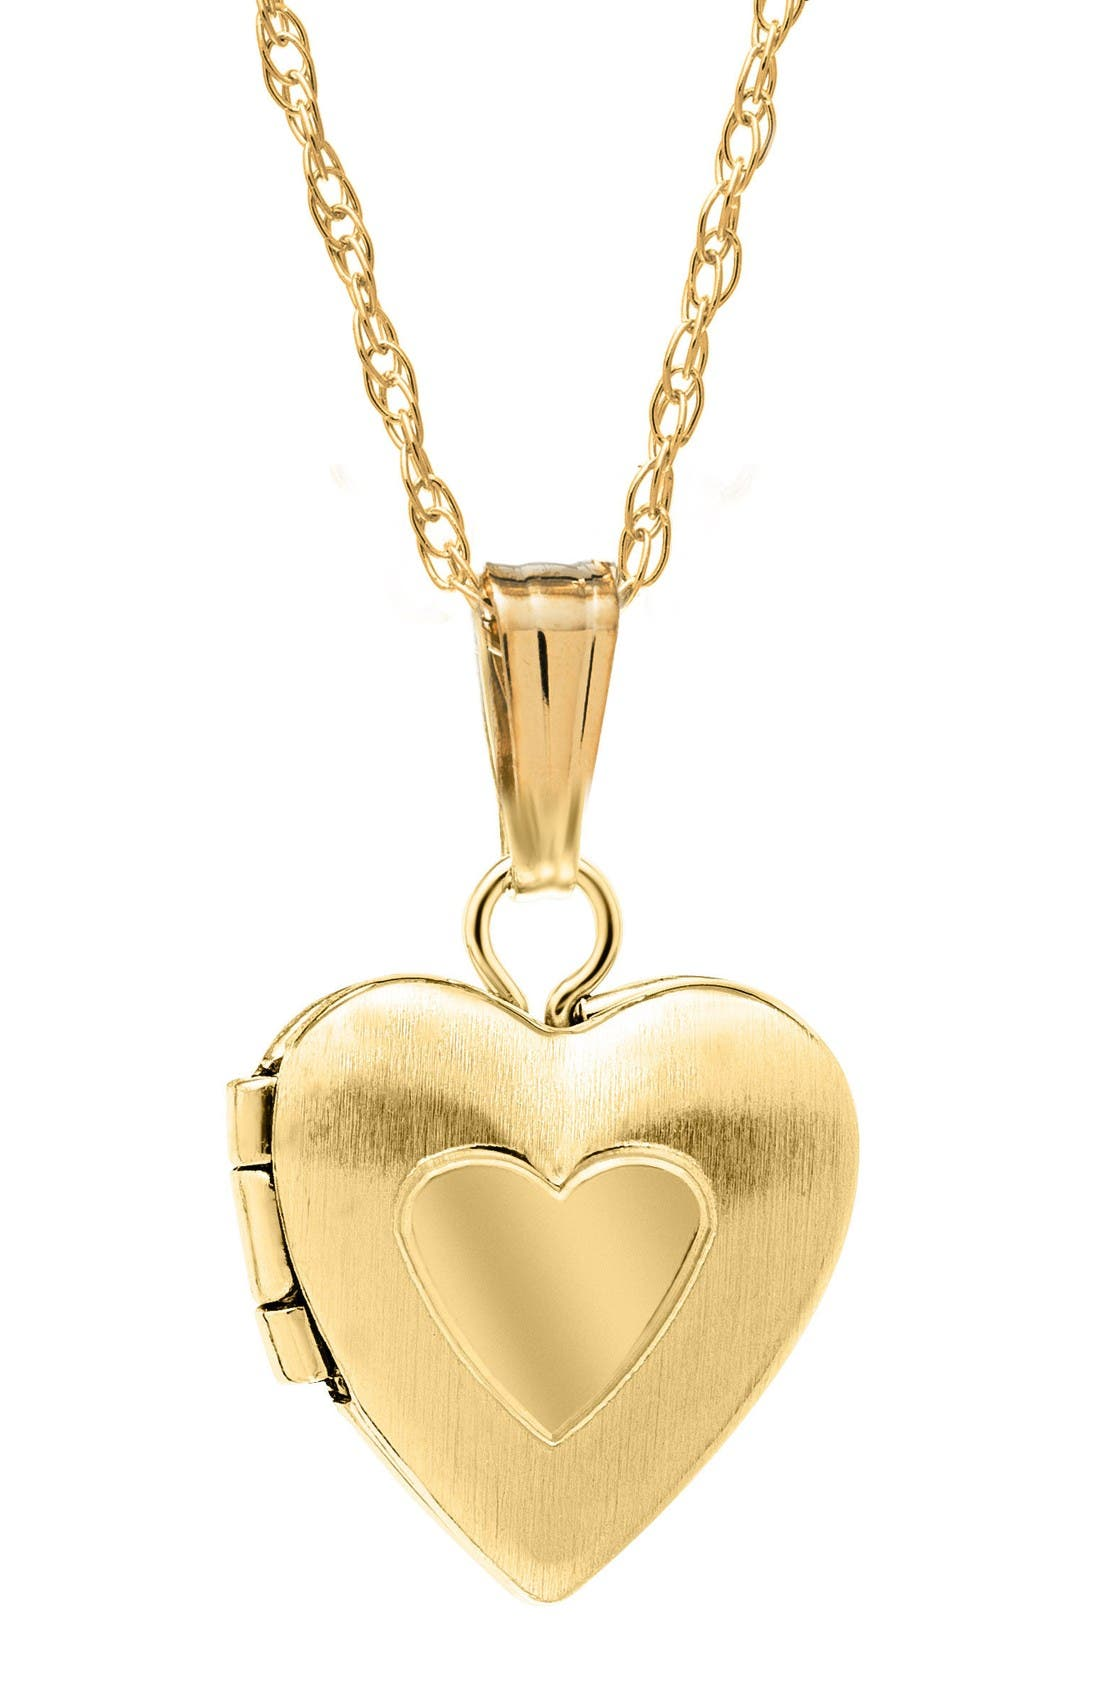 14k Gold Heart Locket Necklace,                             Main thumbnail 1, color,                             Gold